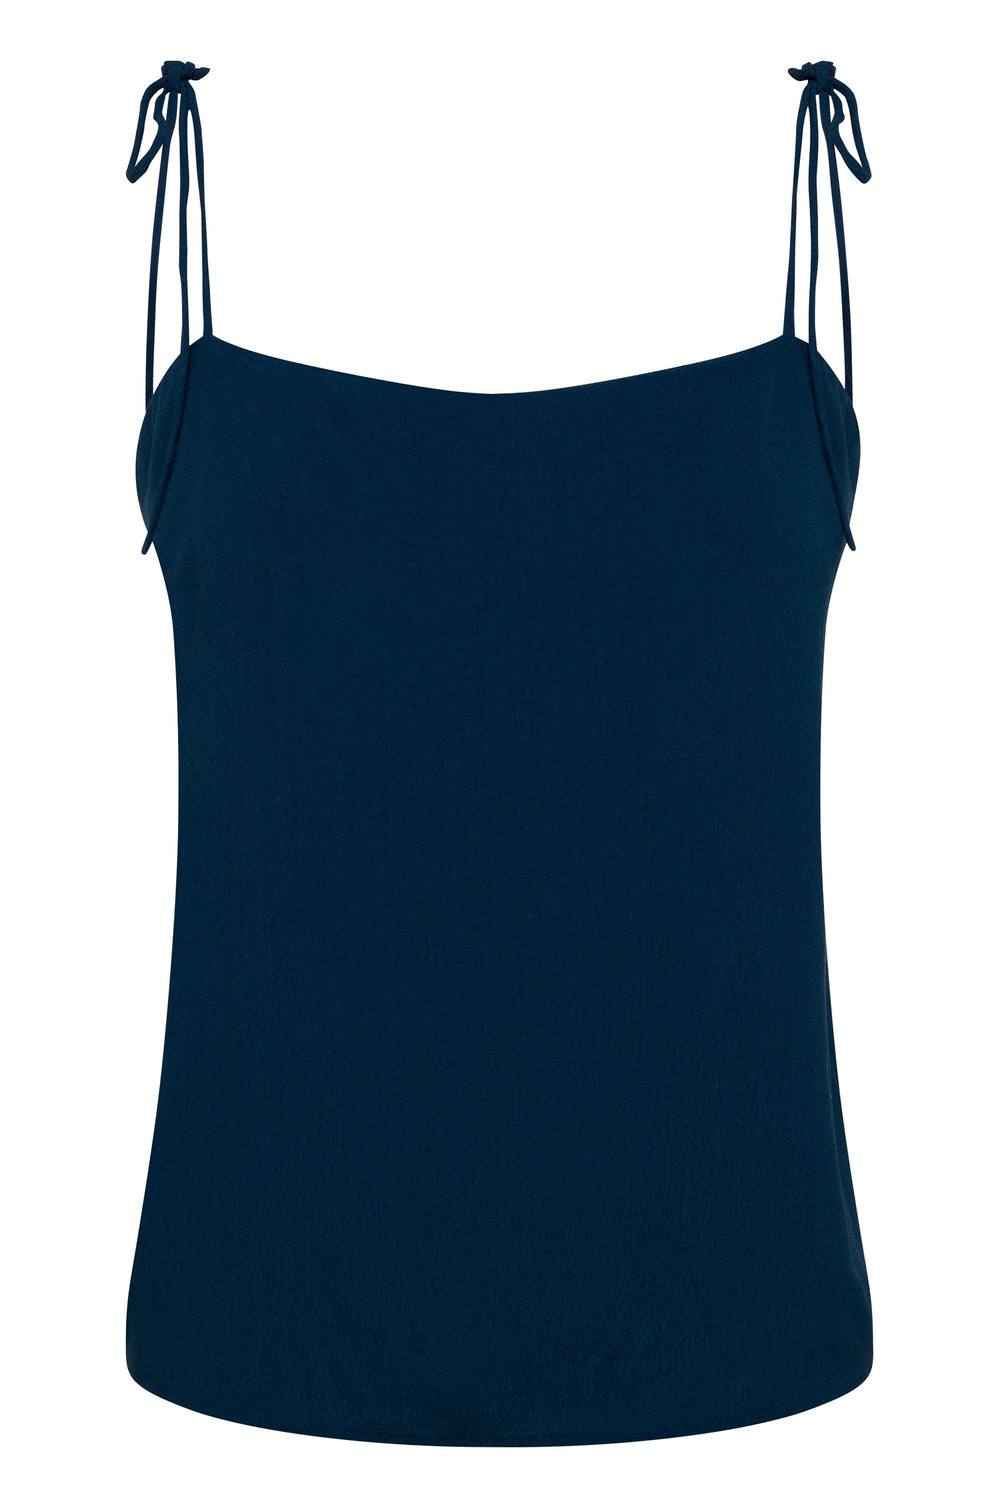 Heidi Top In Navy